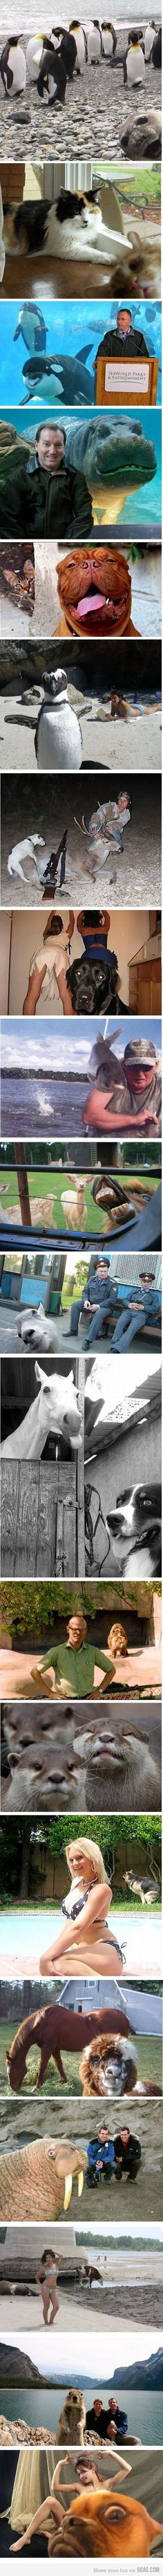 animal photobombs are the best